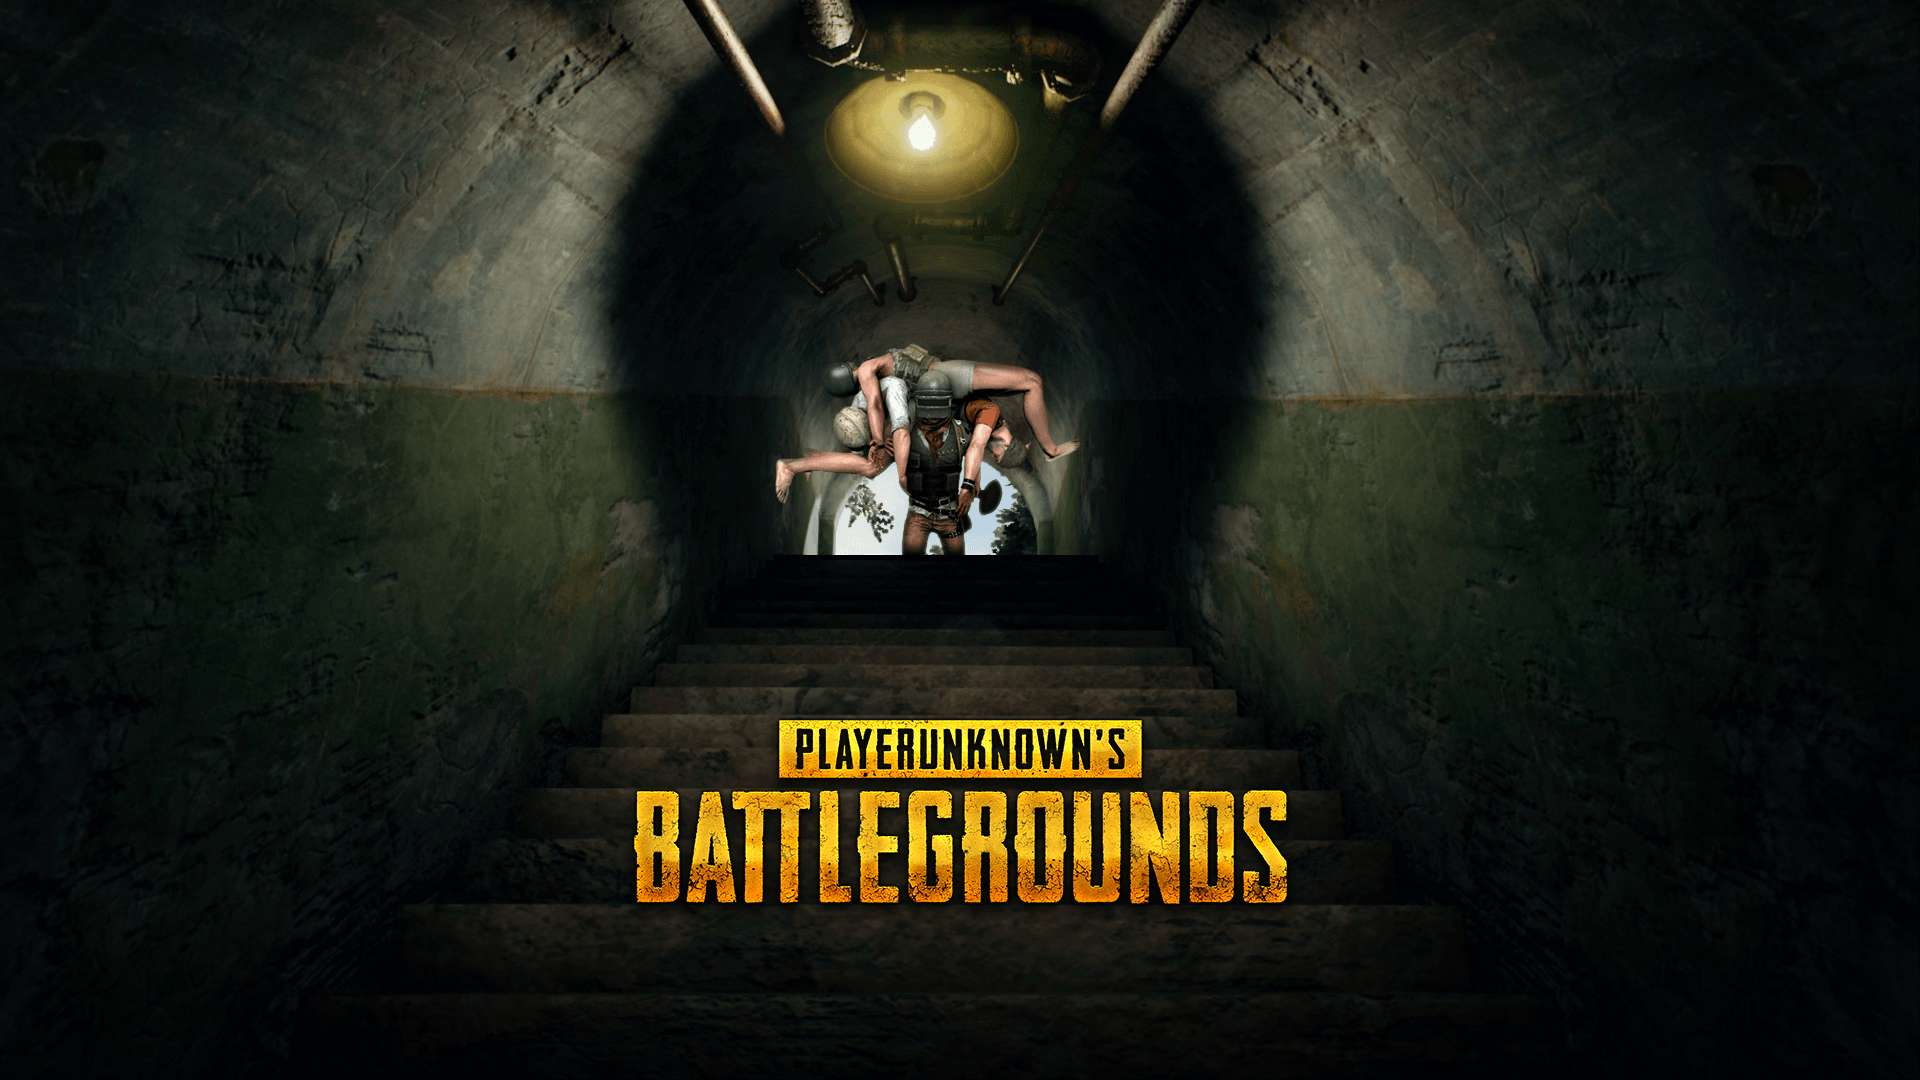 Pubg Mobile Wallpaper Zedge: PlayerUnknown's Battlegrounds Wallpapers